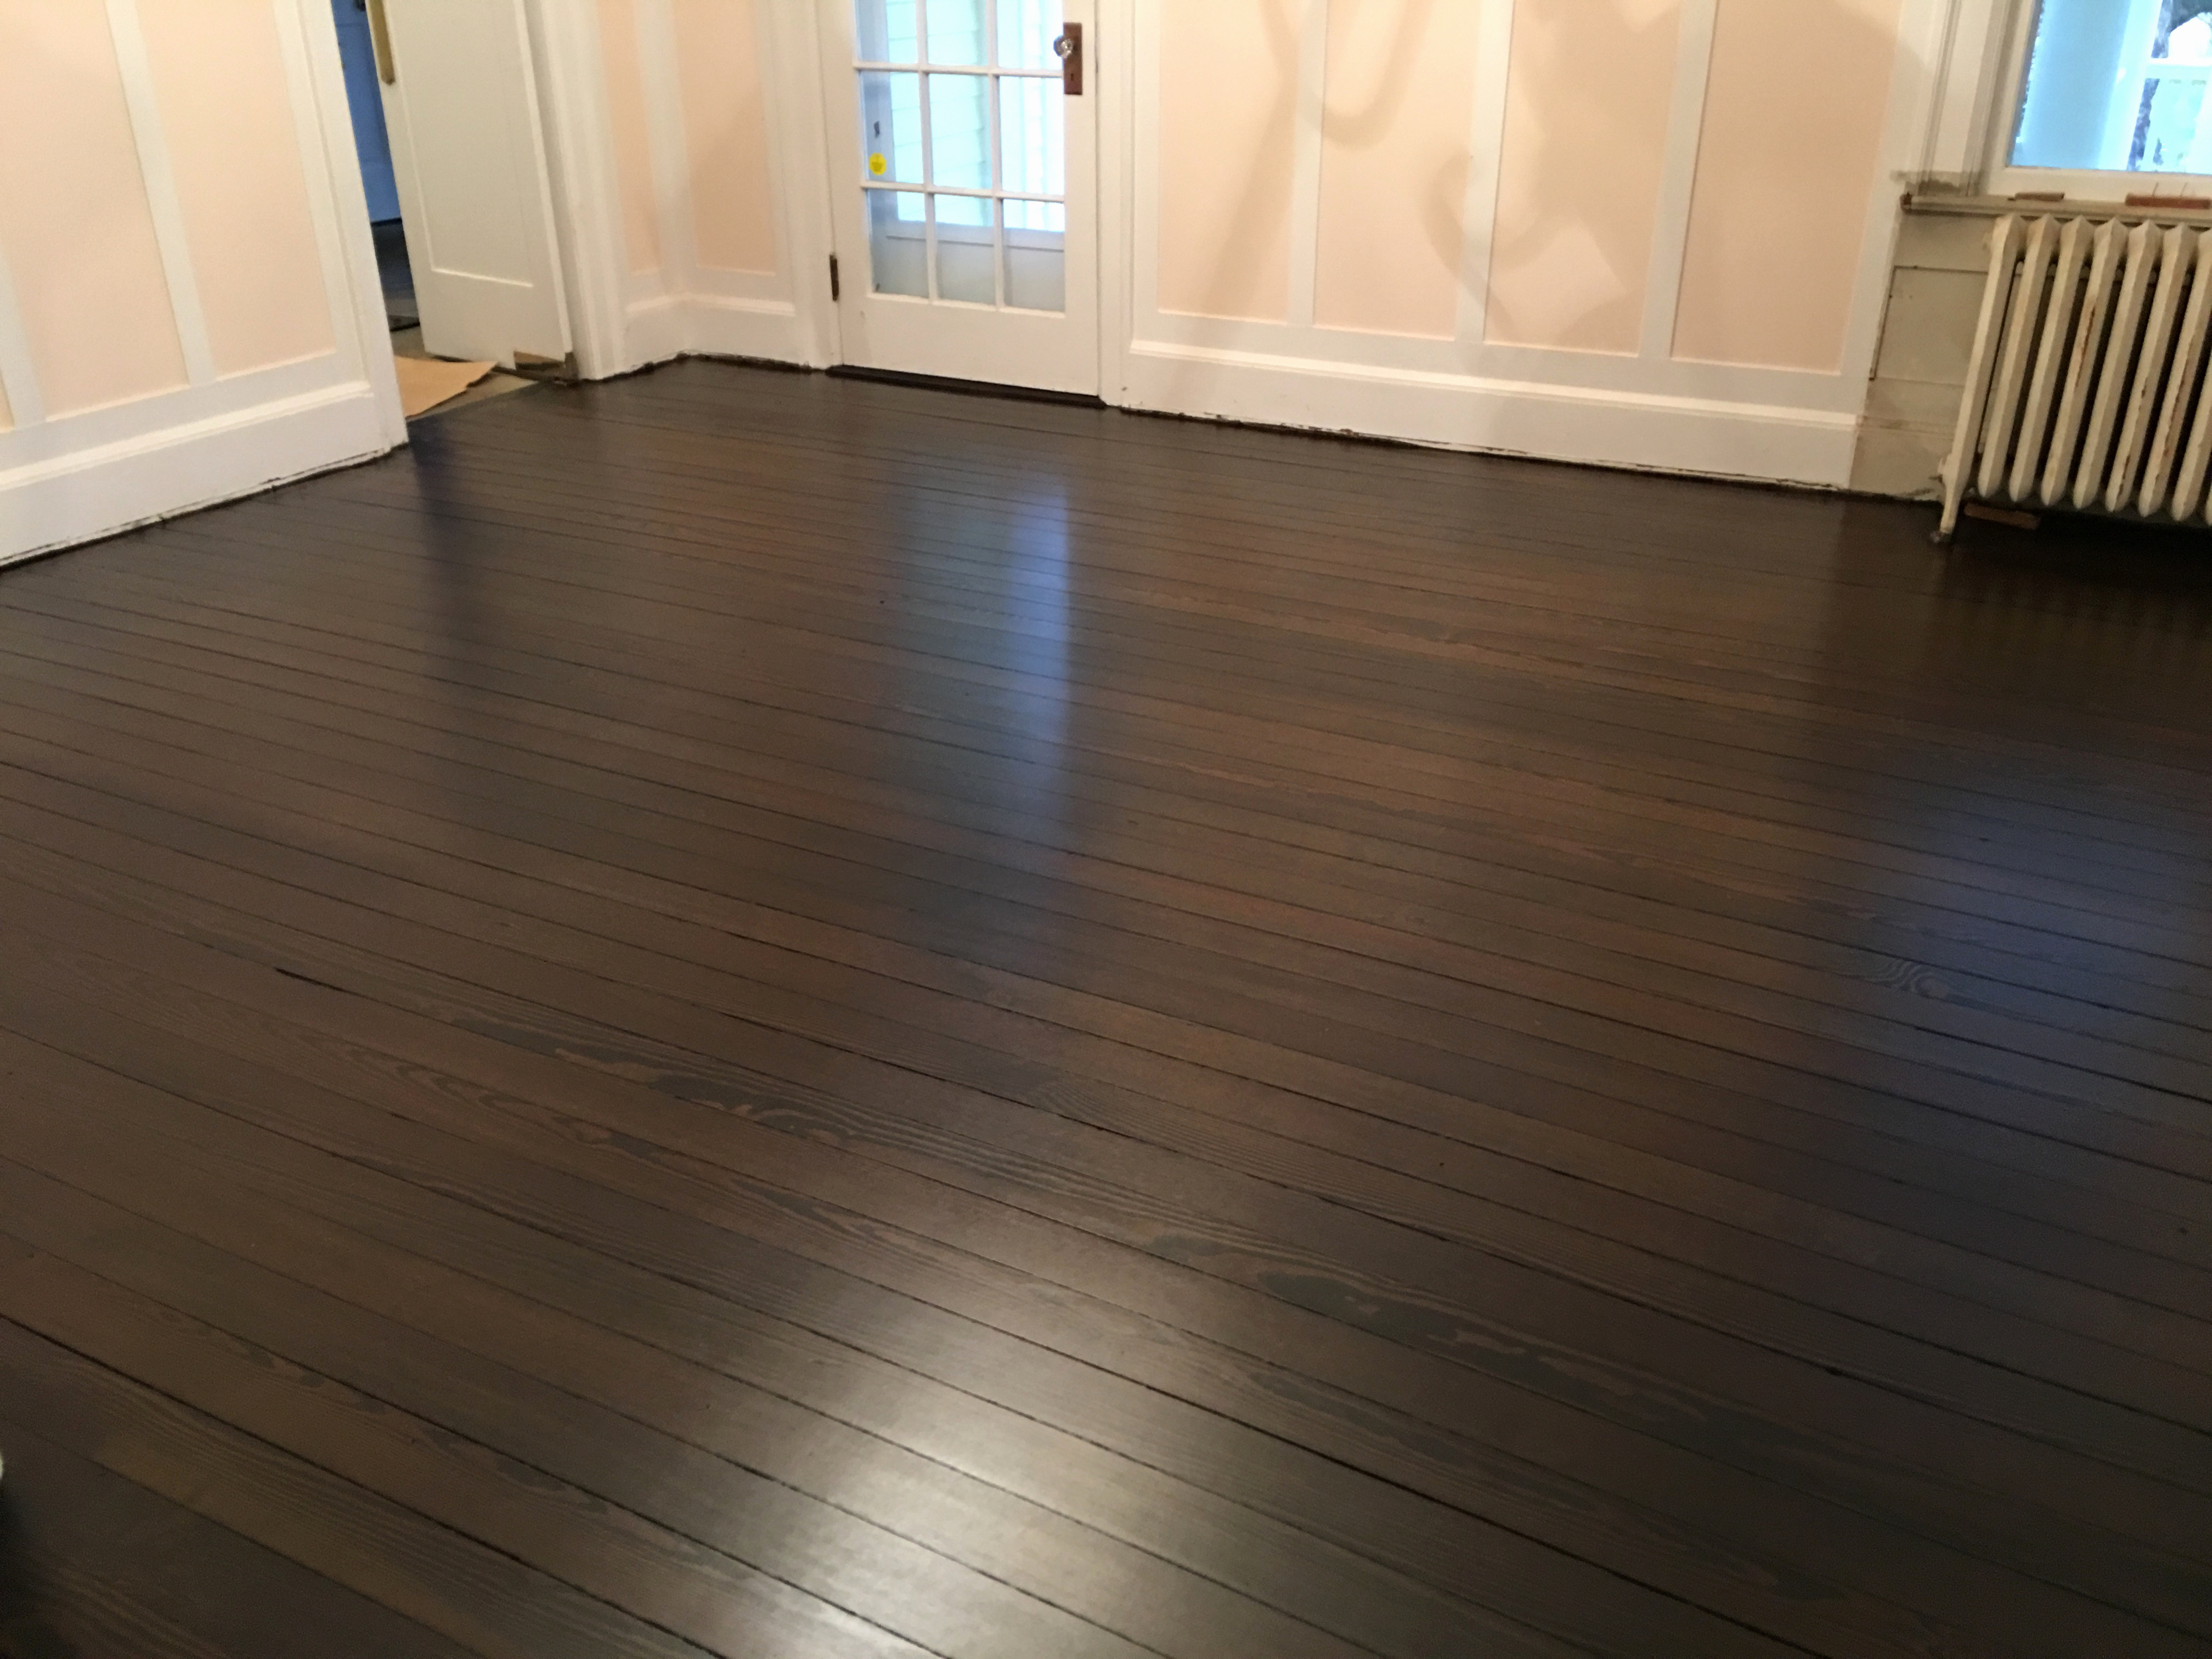 15 Stunning How Do You Install Hardwood Floors On A Concrete Slab 2021 free download how do you install hardwood floors on a concrete slab of hardwoodfloor low voc canada archives wlcu pertaining to hardwood floor color trends 2017 elegant wood floor color trends cheap lamin